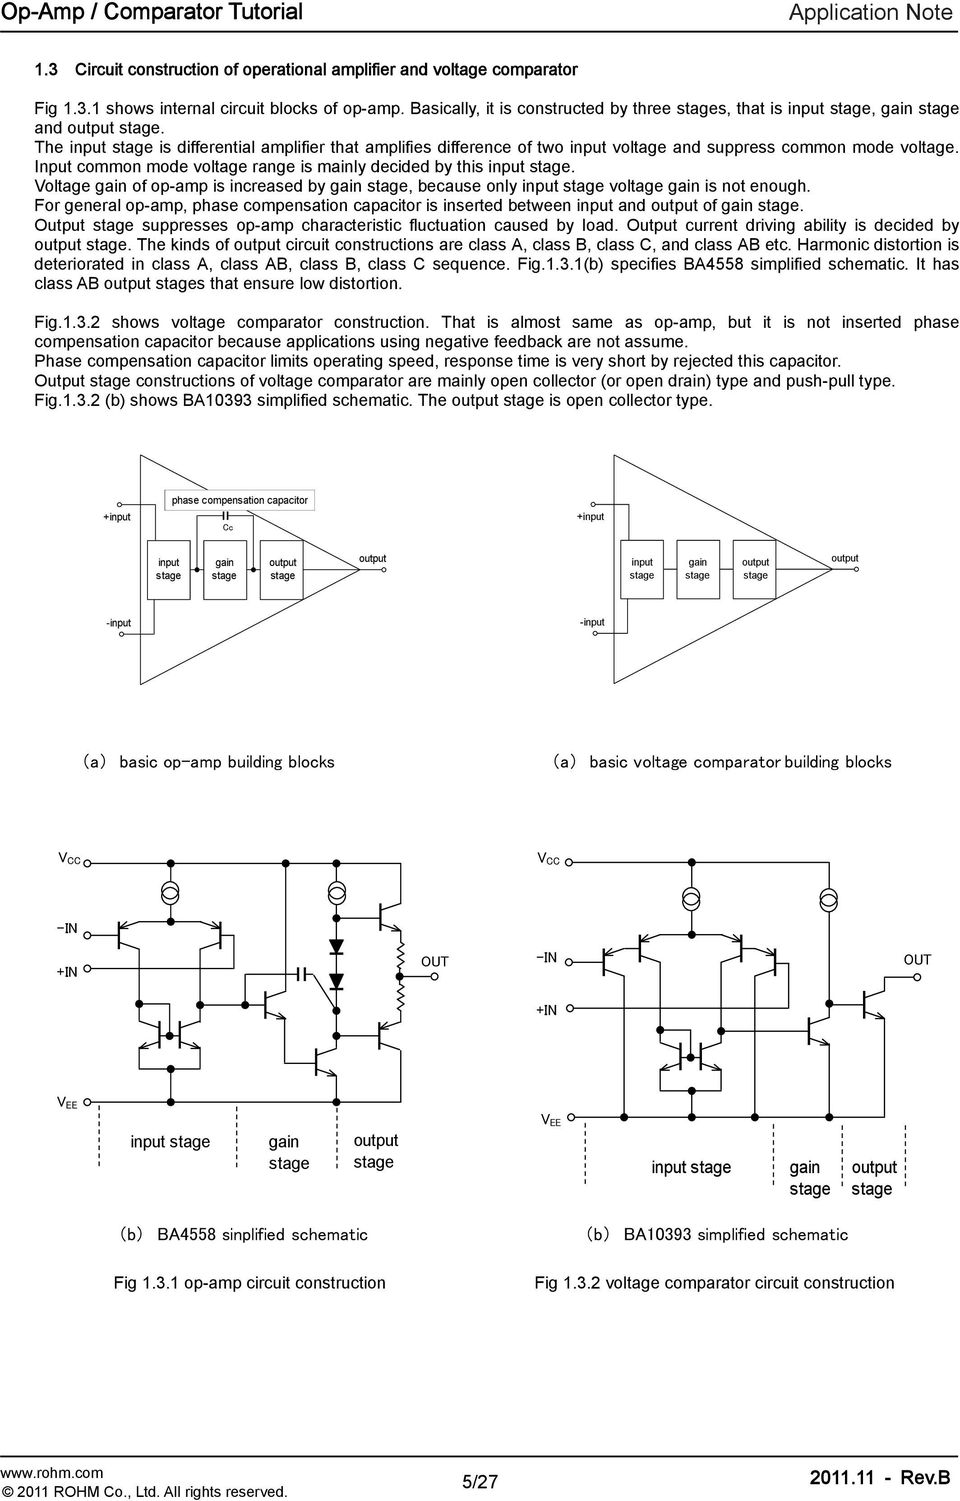 Operational Amplifiers Comparators Application Note Op Amp As Comparator Circuit 741 Construction Fig Voltage 5 27 The Input Stage Is Dierential Ampliier That Ampliies Dierence O Two